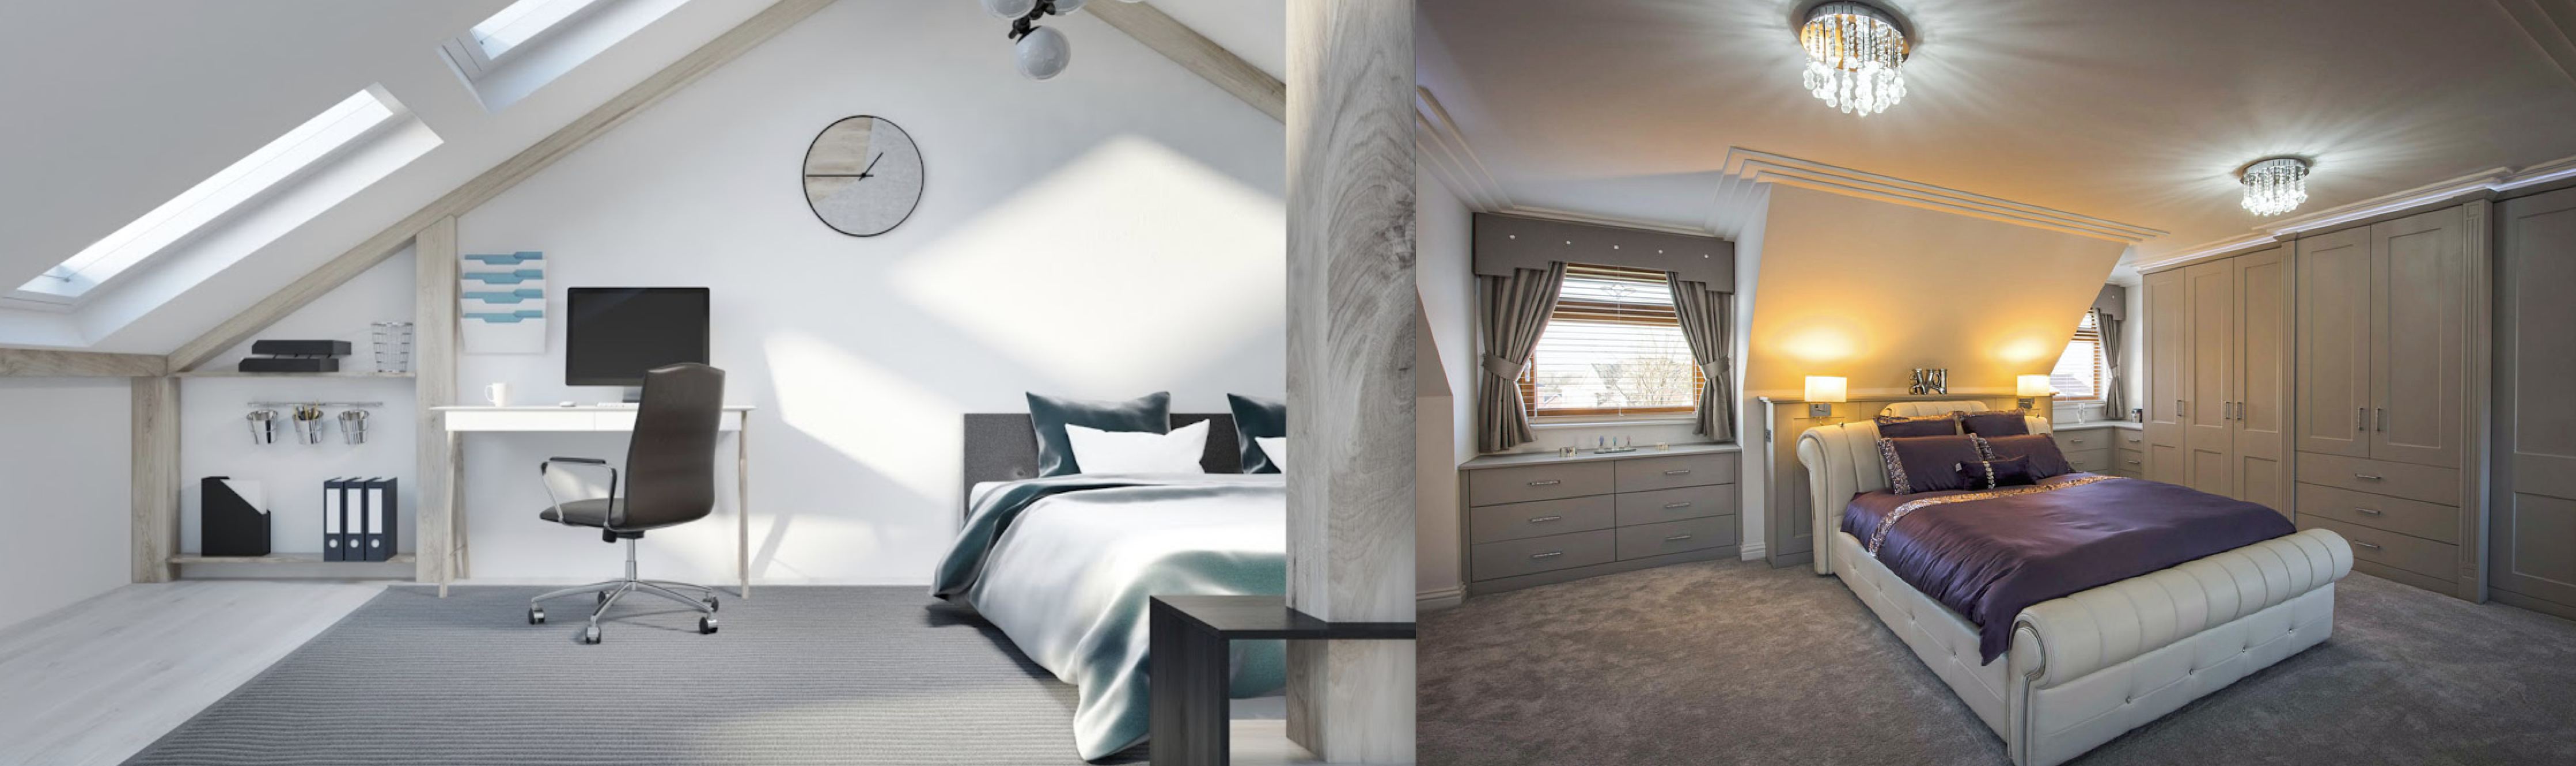 Beautiful Dormer loft conversion in Romiley, creating a new master bedroom with private bathroom, walk in wardrobe and stunning new oak staircase with Velux polyurethane SK06 GPU windows.